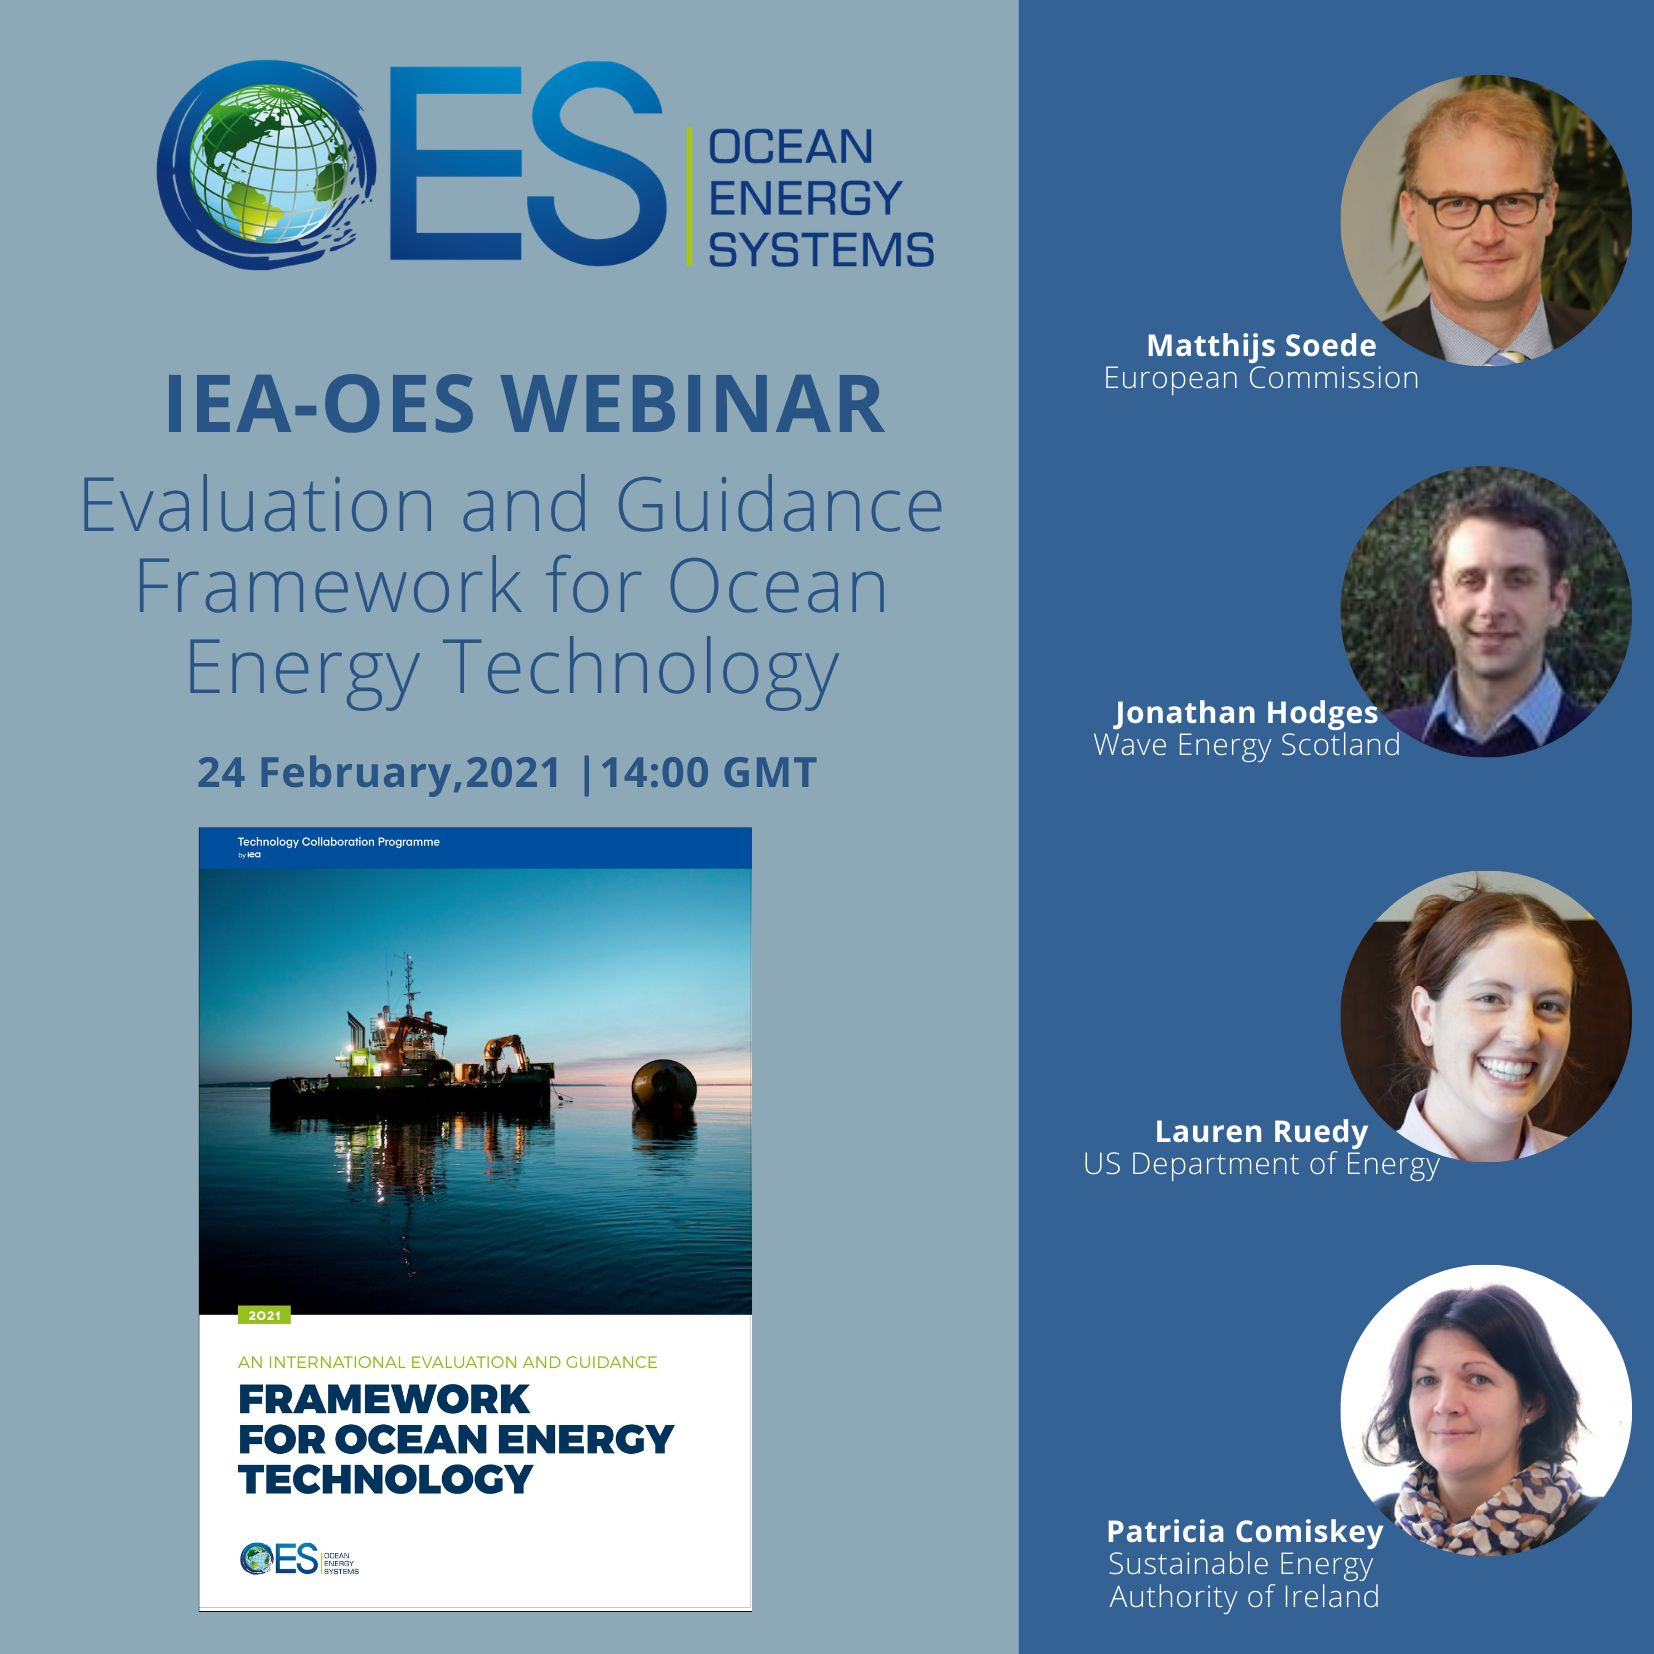 12834-iea-oes-webinar-evaluation-and-guidance-framework-for-ocean-energy-technology.png